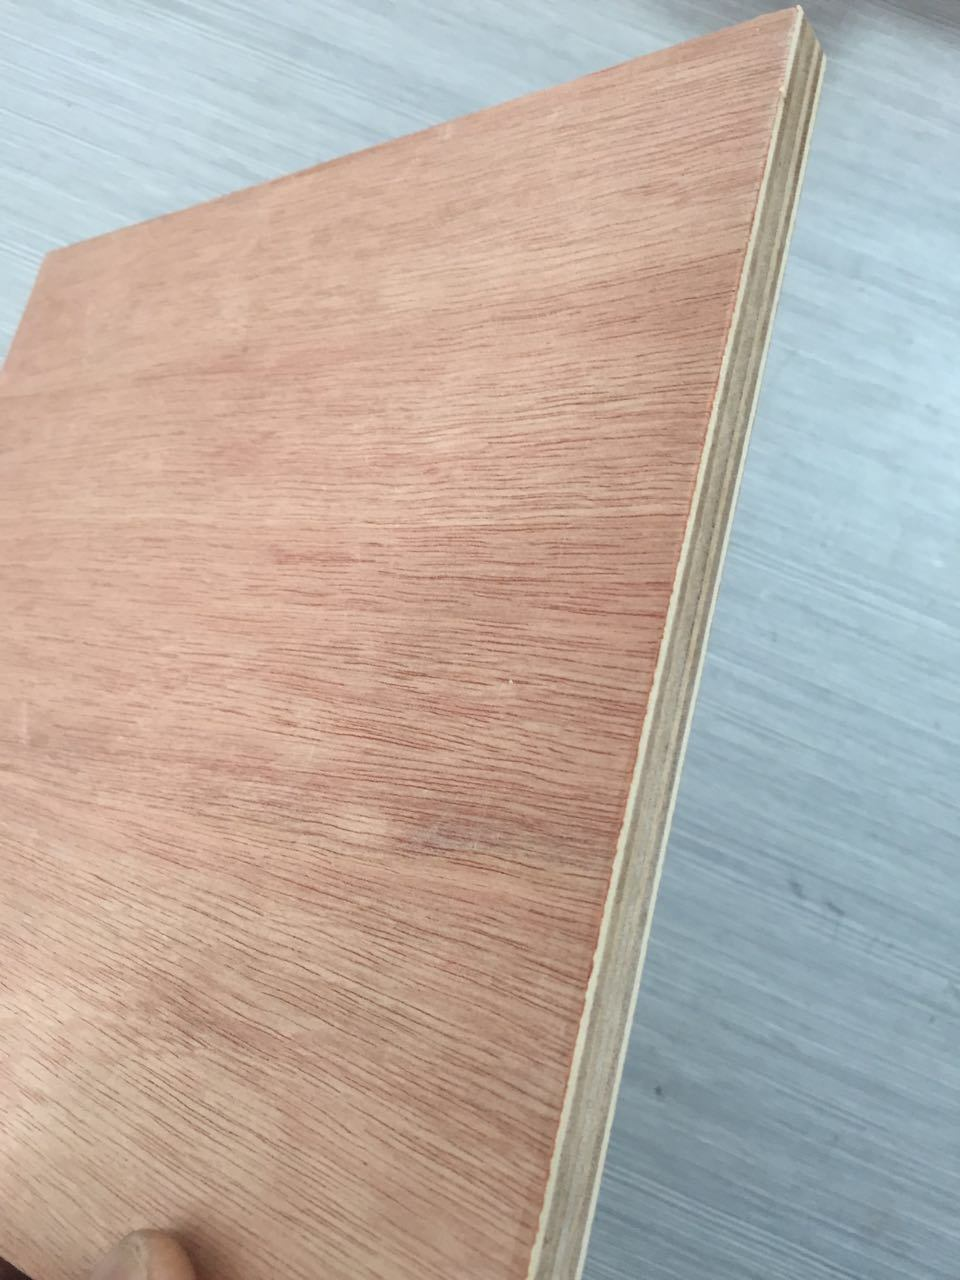 18mm High Quality Best Price Bintangor Plywood Lumber